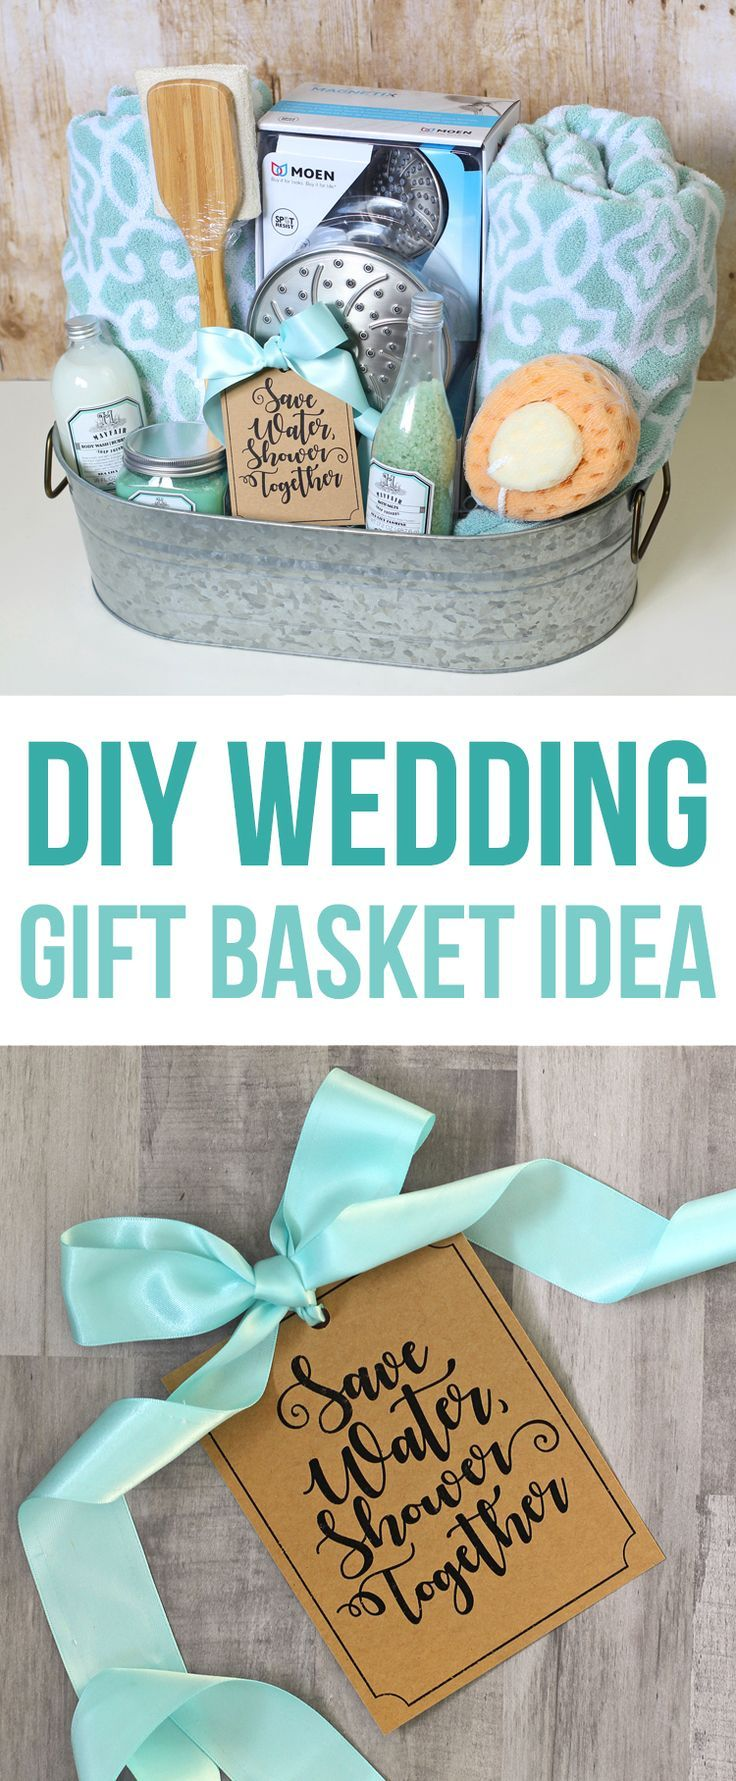 Best 25 wedding gifts ideas on pinterest love gifts this diy wedding gift basket idea has a shower theme and includes bath towels a negle Gallery